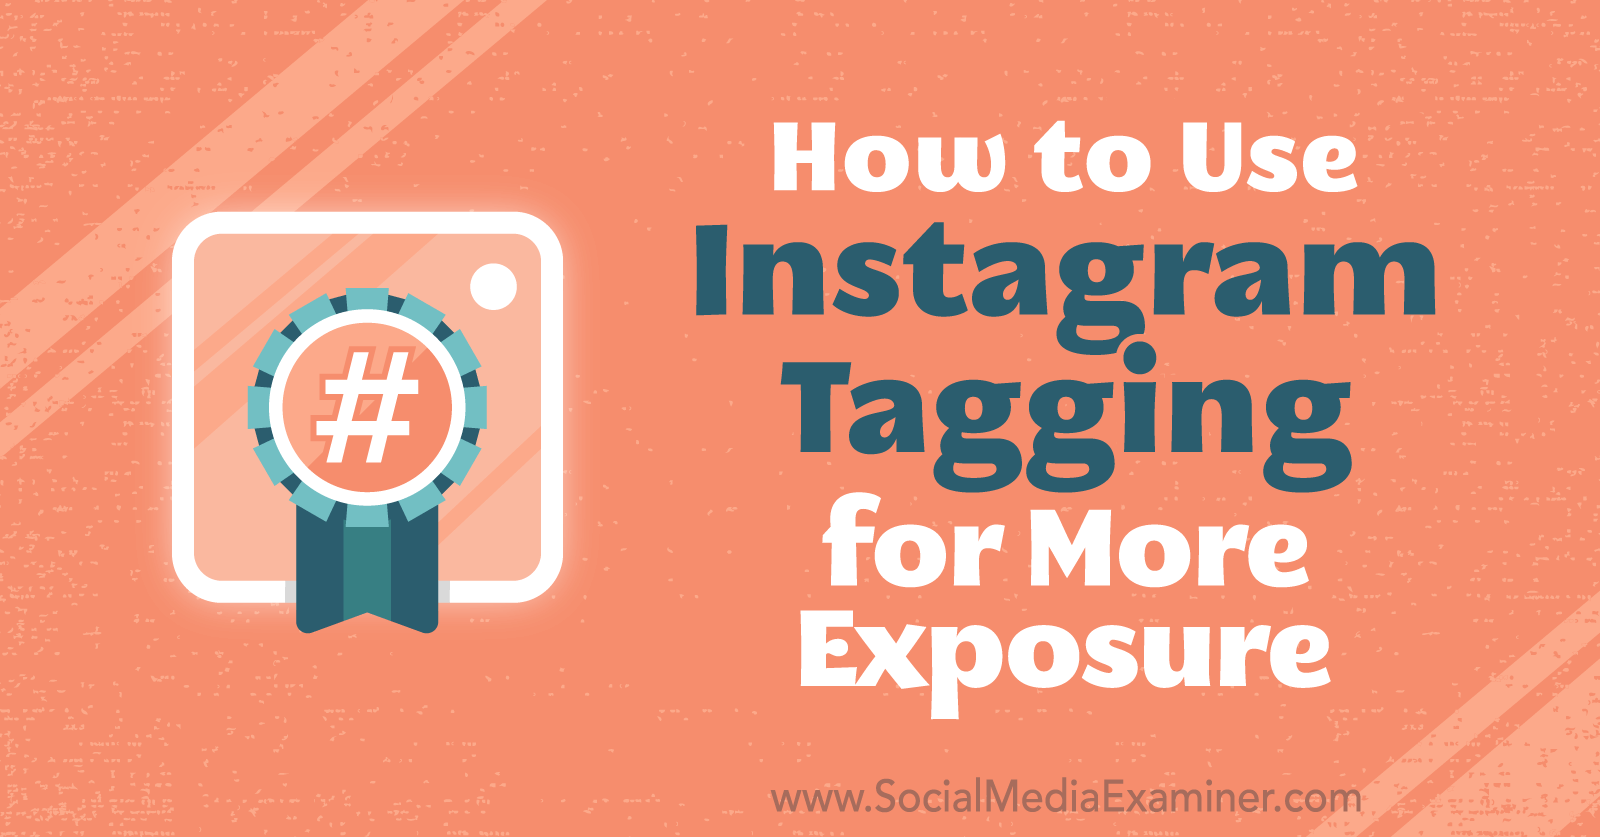 5 ways to improve your instagram marketing social media examiner How To Use Instagram Tagging For More Exposure In 2020 Social Media Examiner Instagram Marketing Instagram